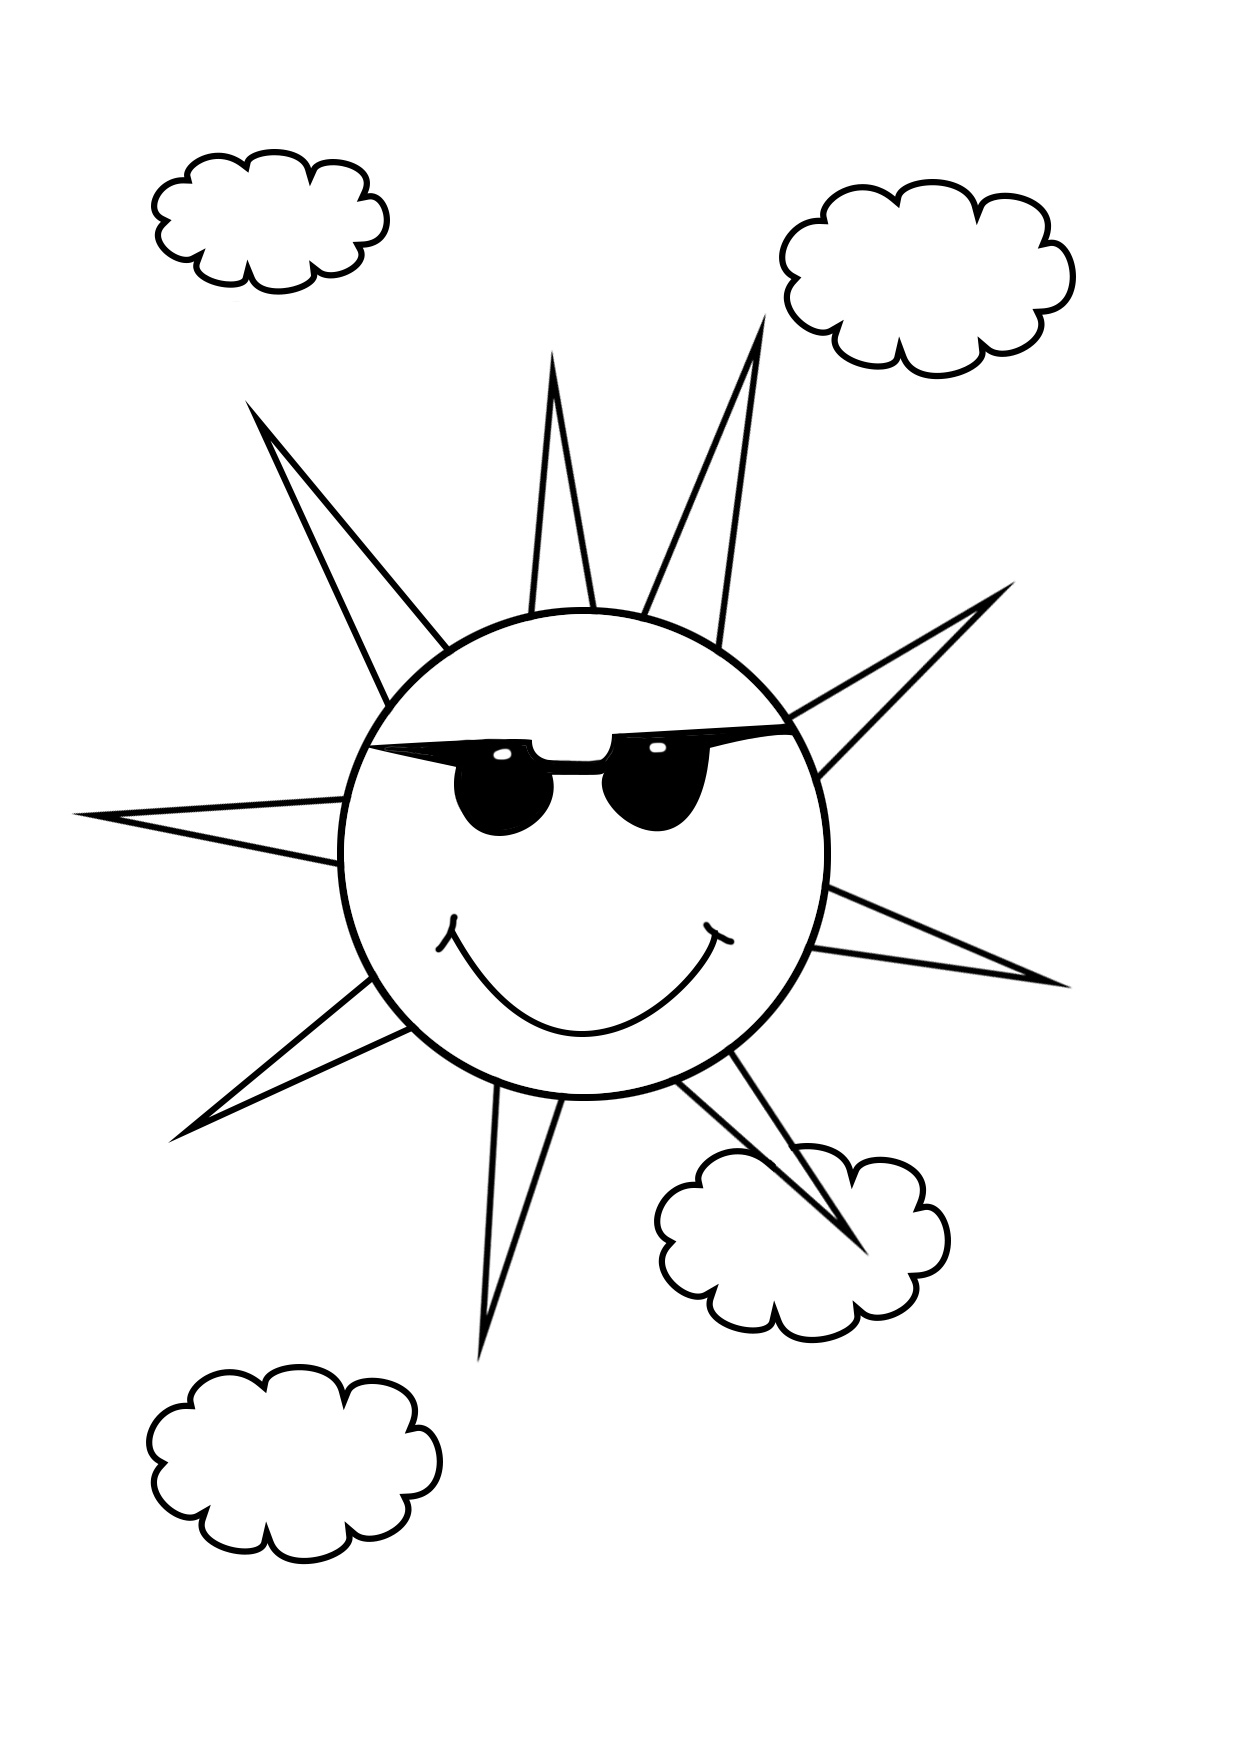 sun coloring pages with sunglasses and clouds